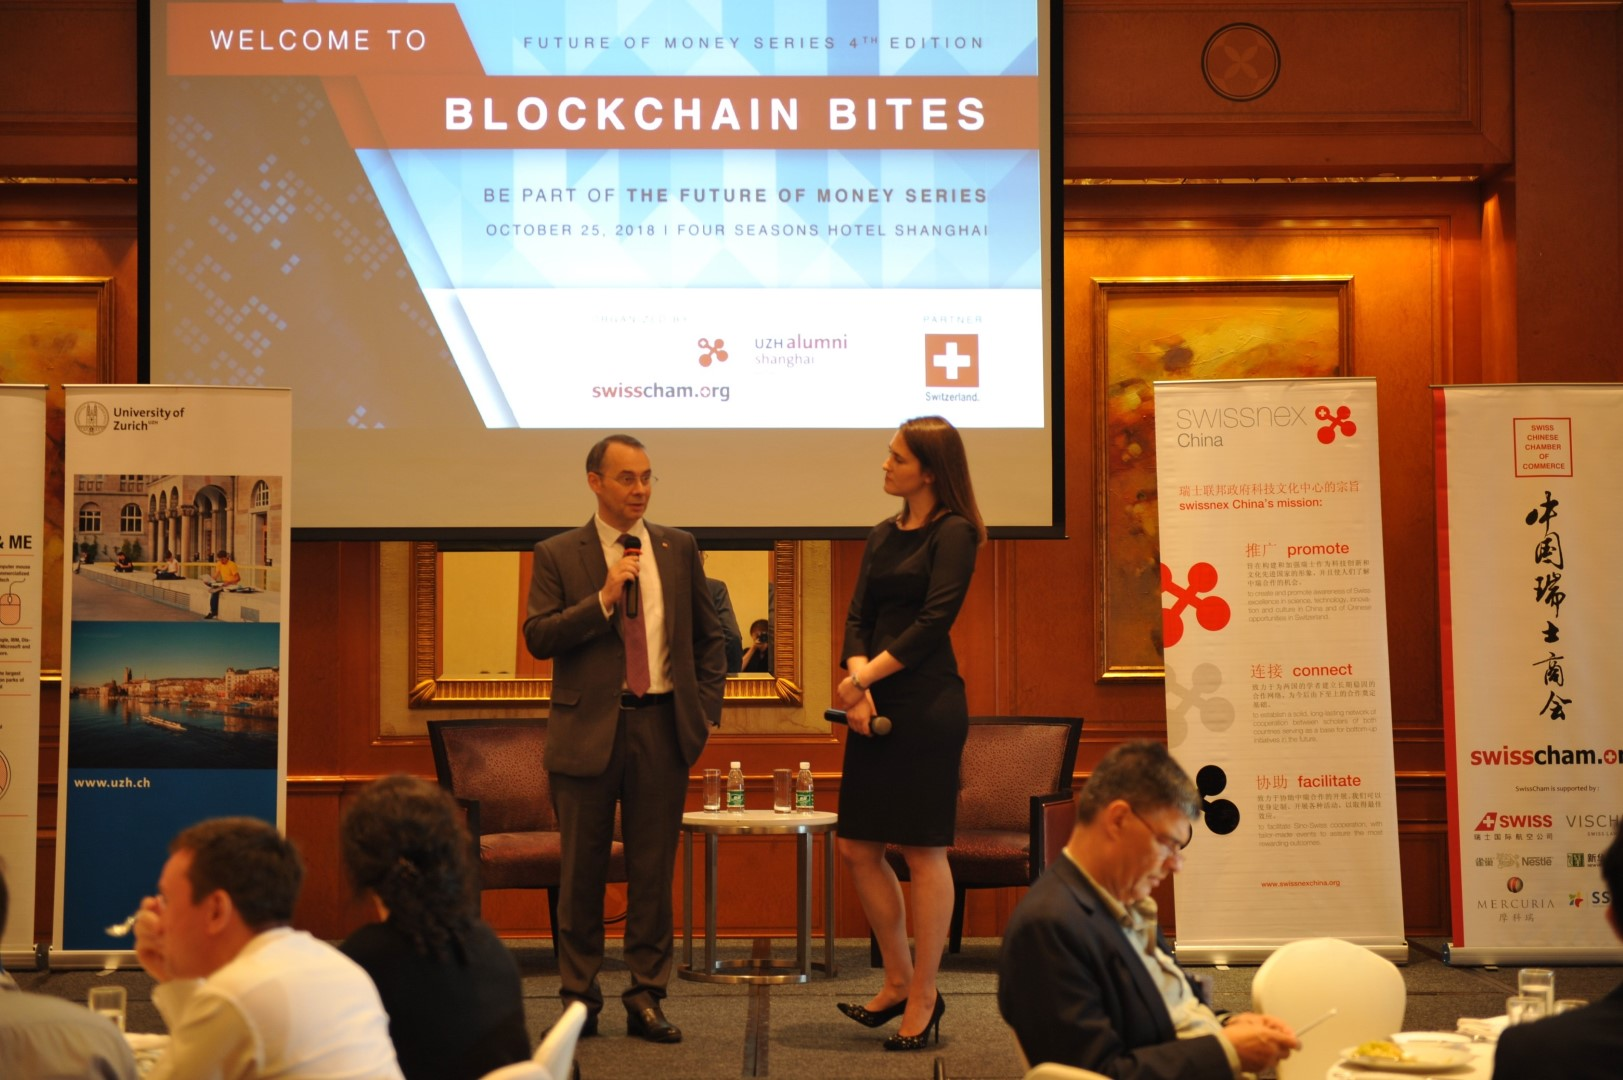 Welcoming words by swissnex CEO Felix Moesner and SwissCham Vice President Gianna Abegg